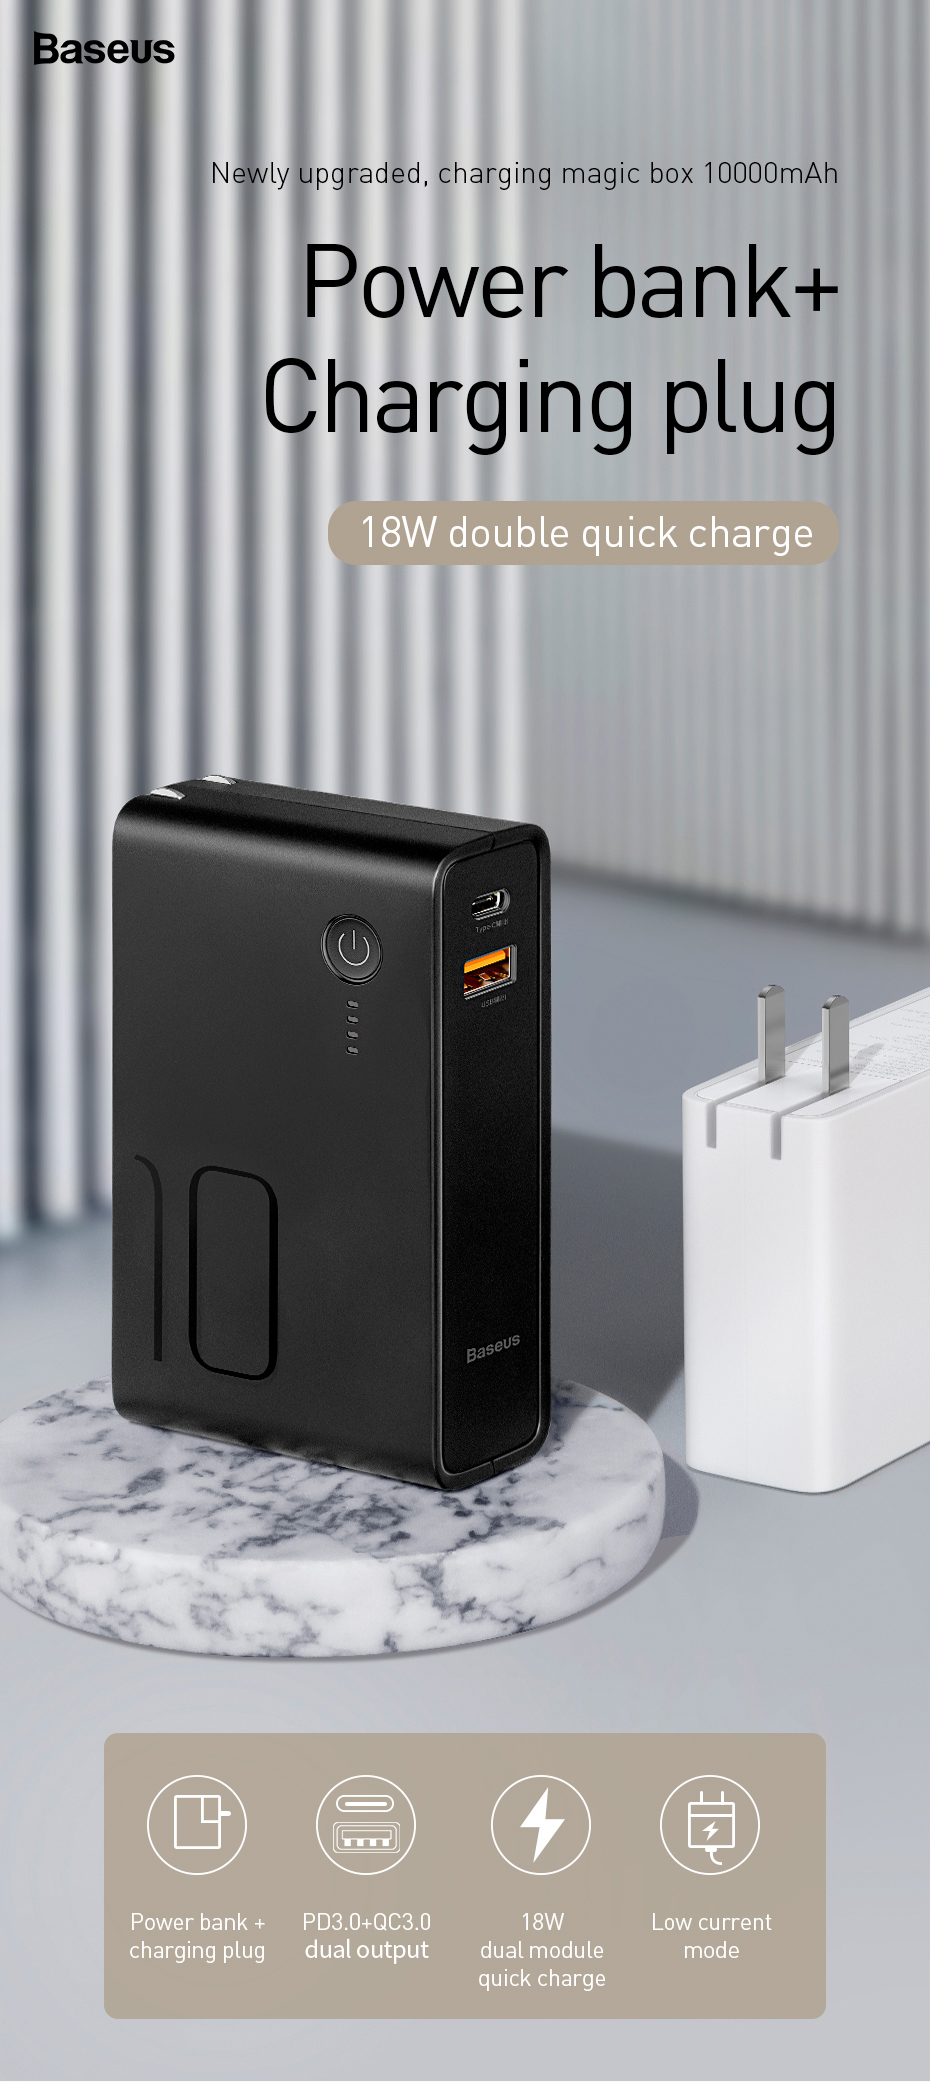 Baseus Energy Reactor Two in One Charger Power Bank 10000mAh 18W 6